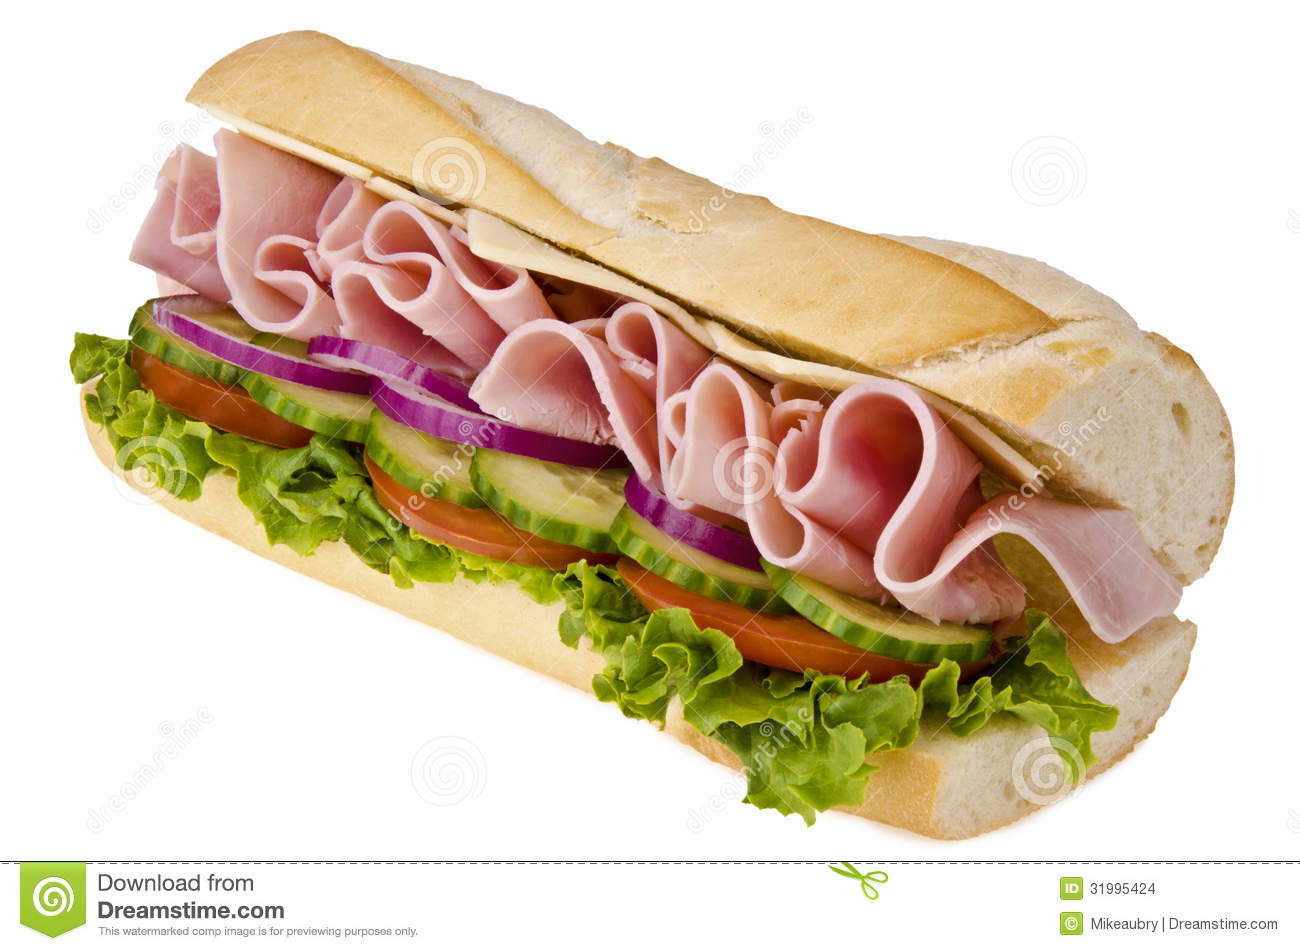 Huge sub sandwich by diagonal isolated on white background.